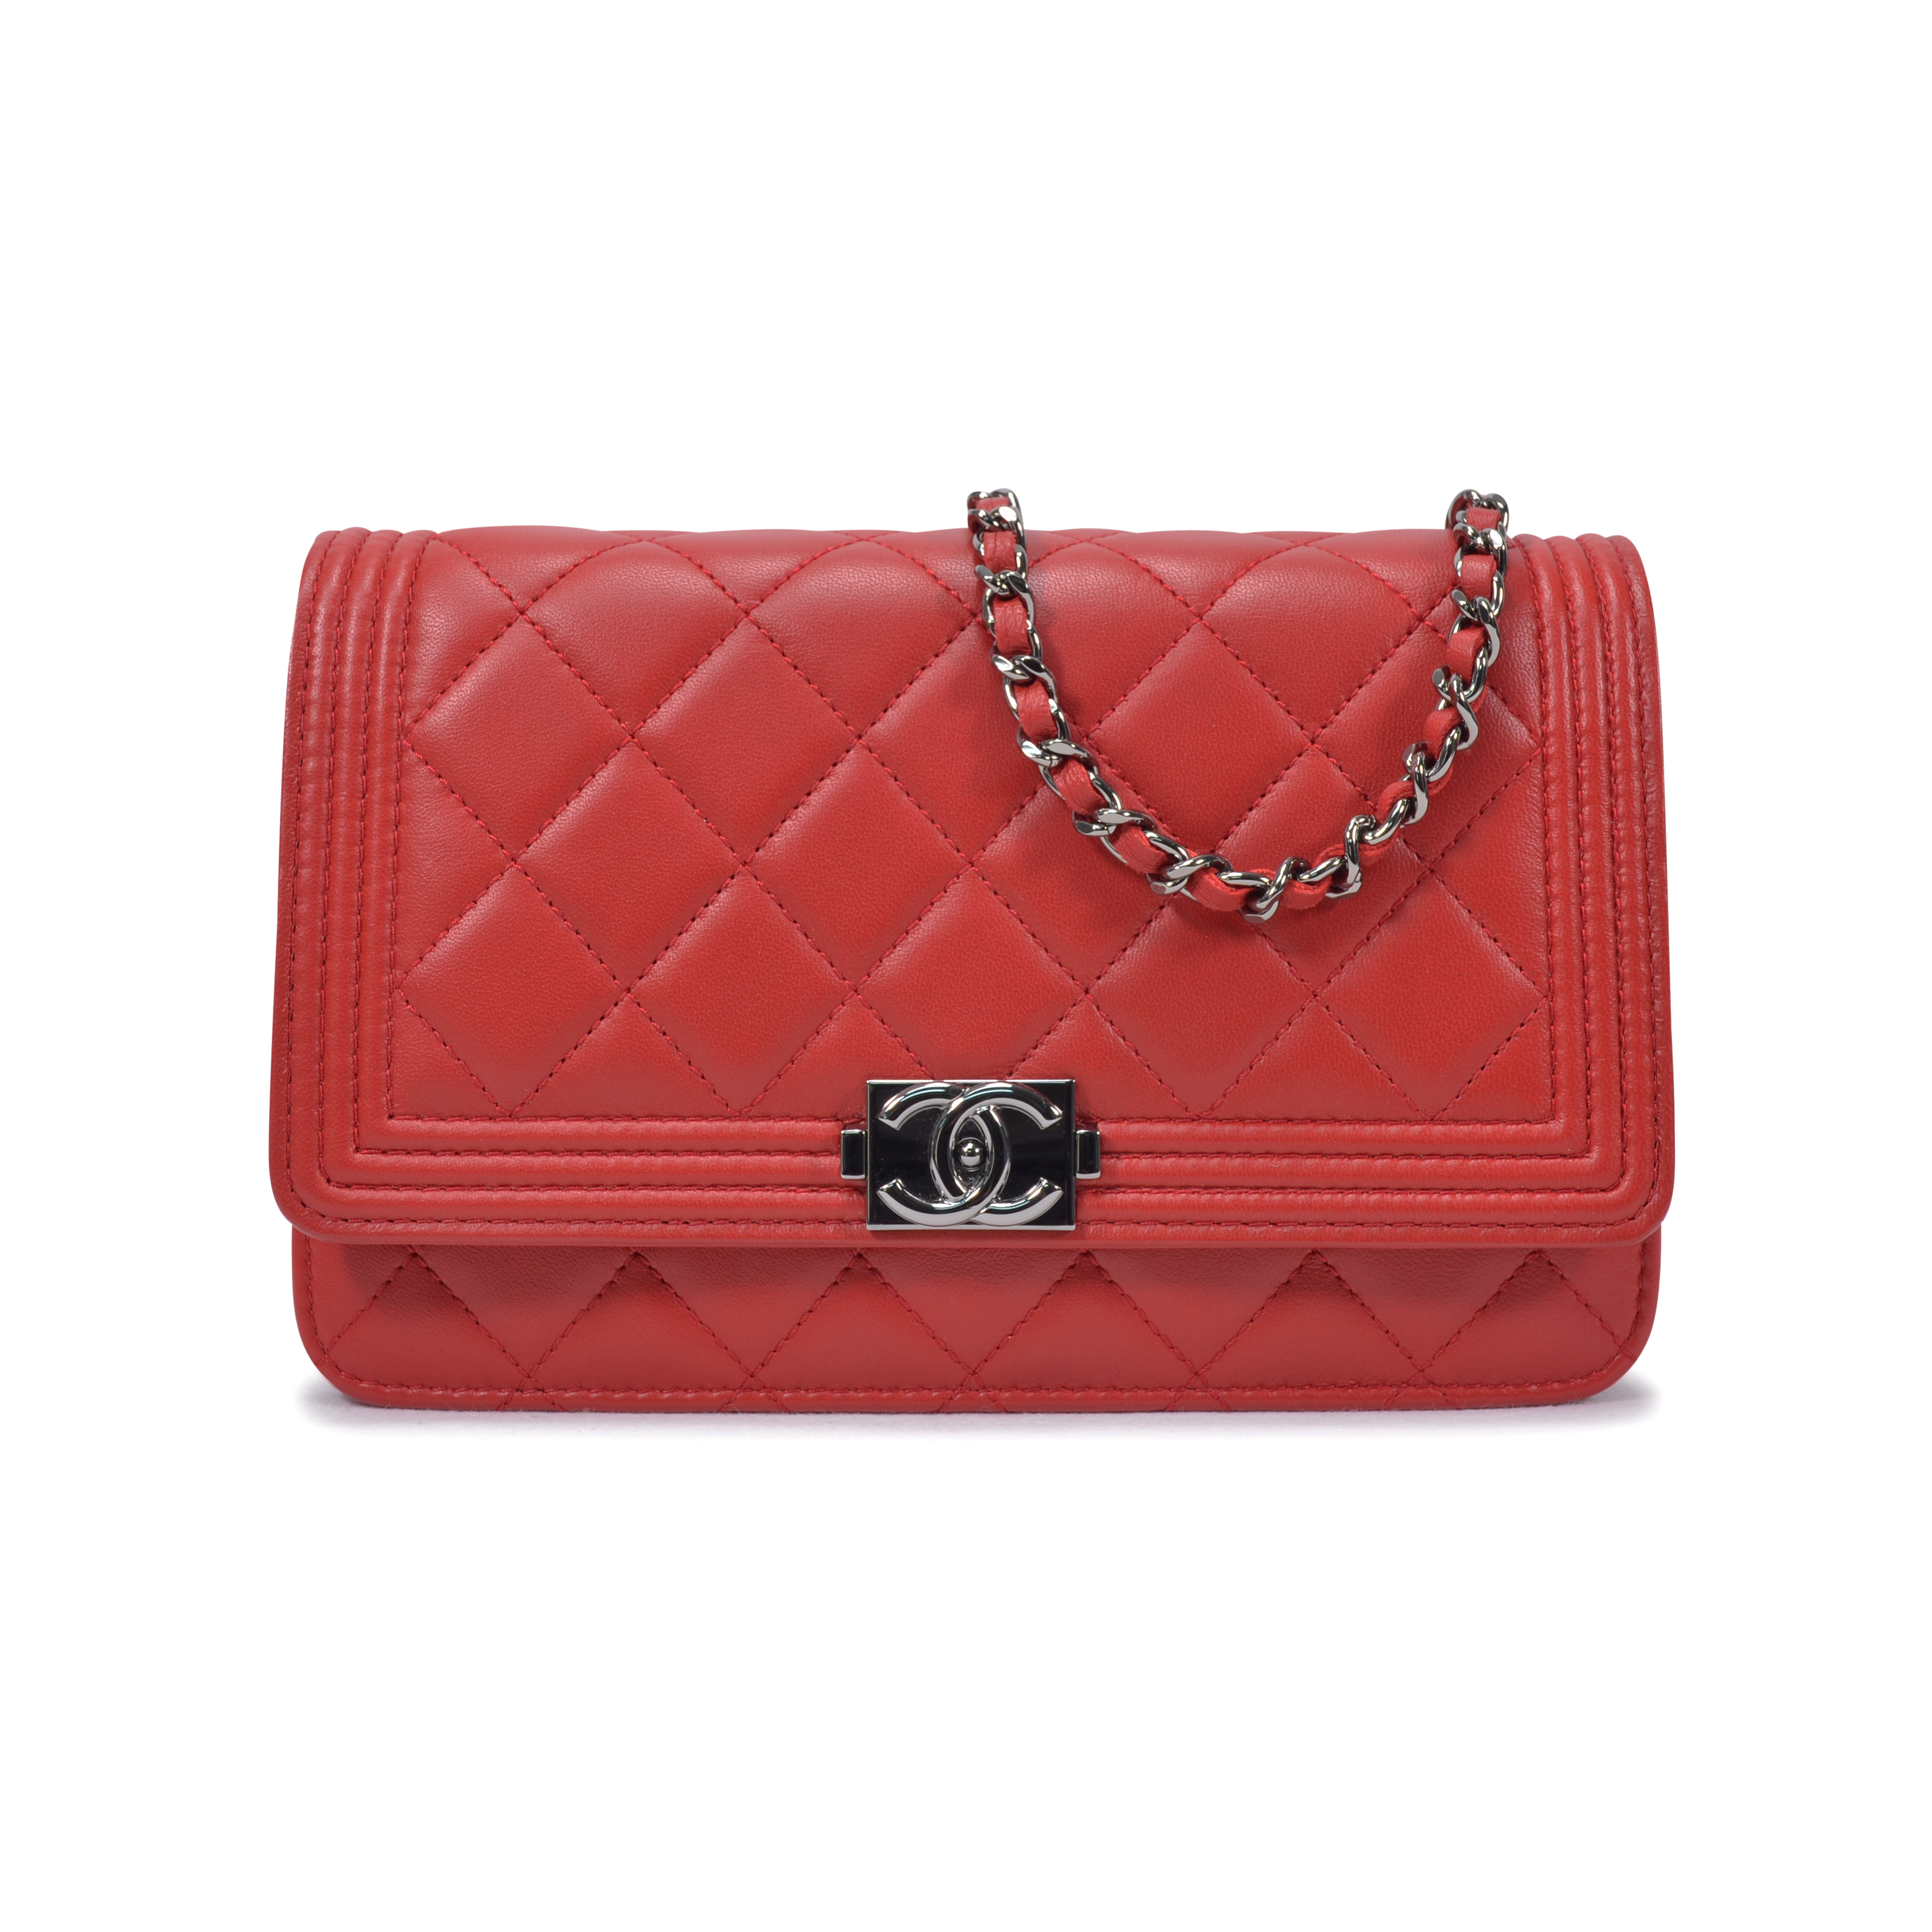 second hand chanel boy wallet on chain red the fifth collection. Black Bedroom Furniture Sets. Home Design Ideas